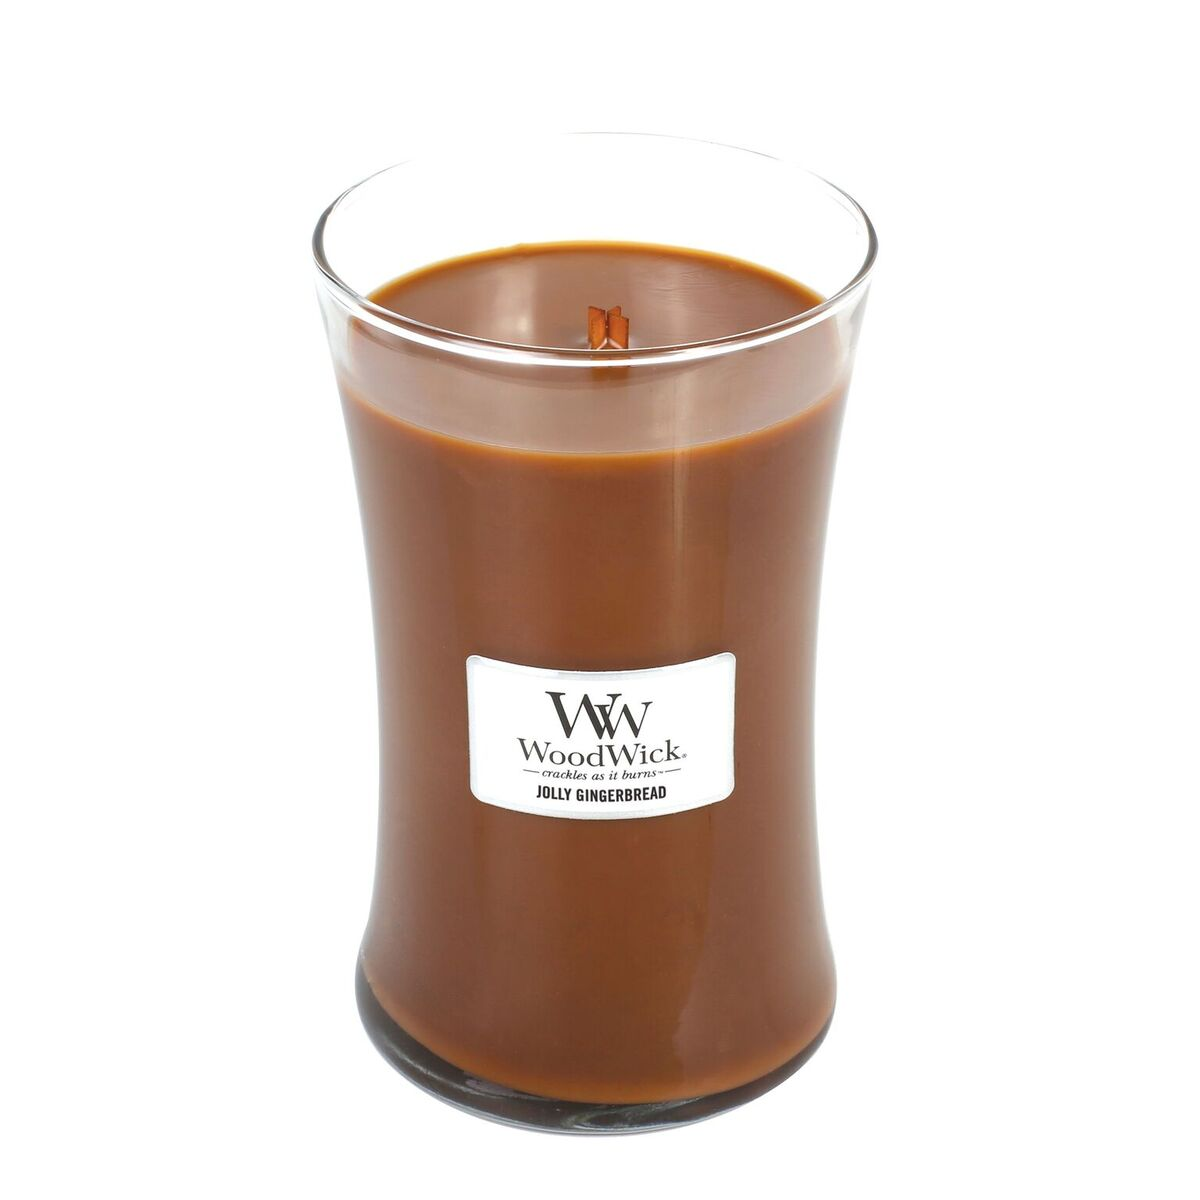 Discontinued Jolly Gingerbread Woodwick Candle 22 Oz